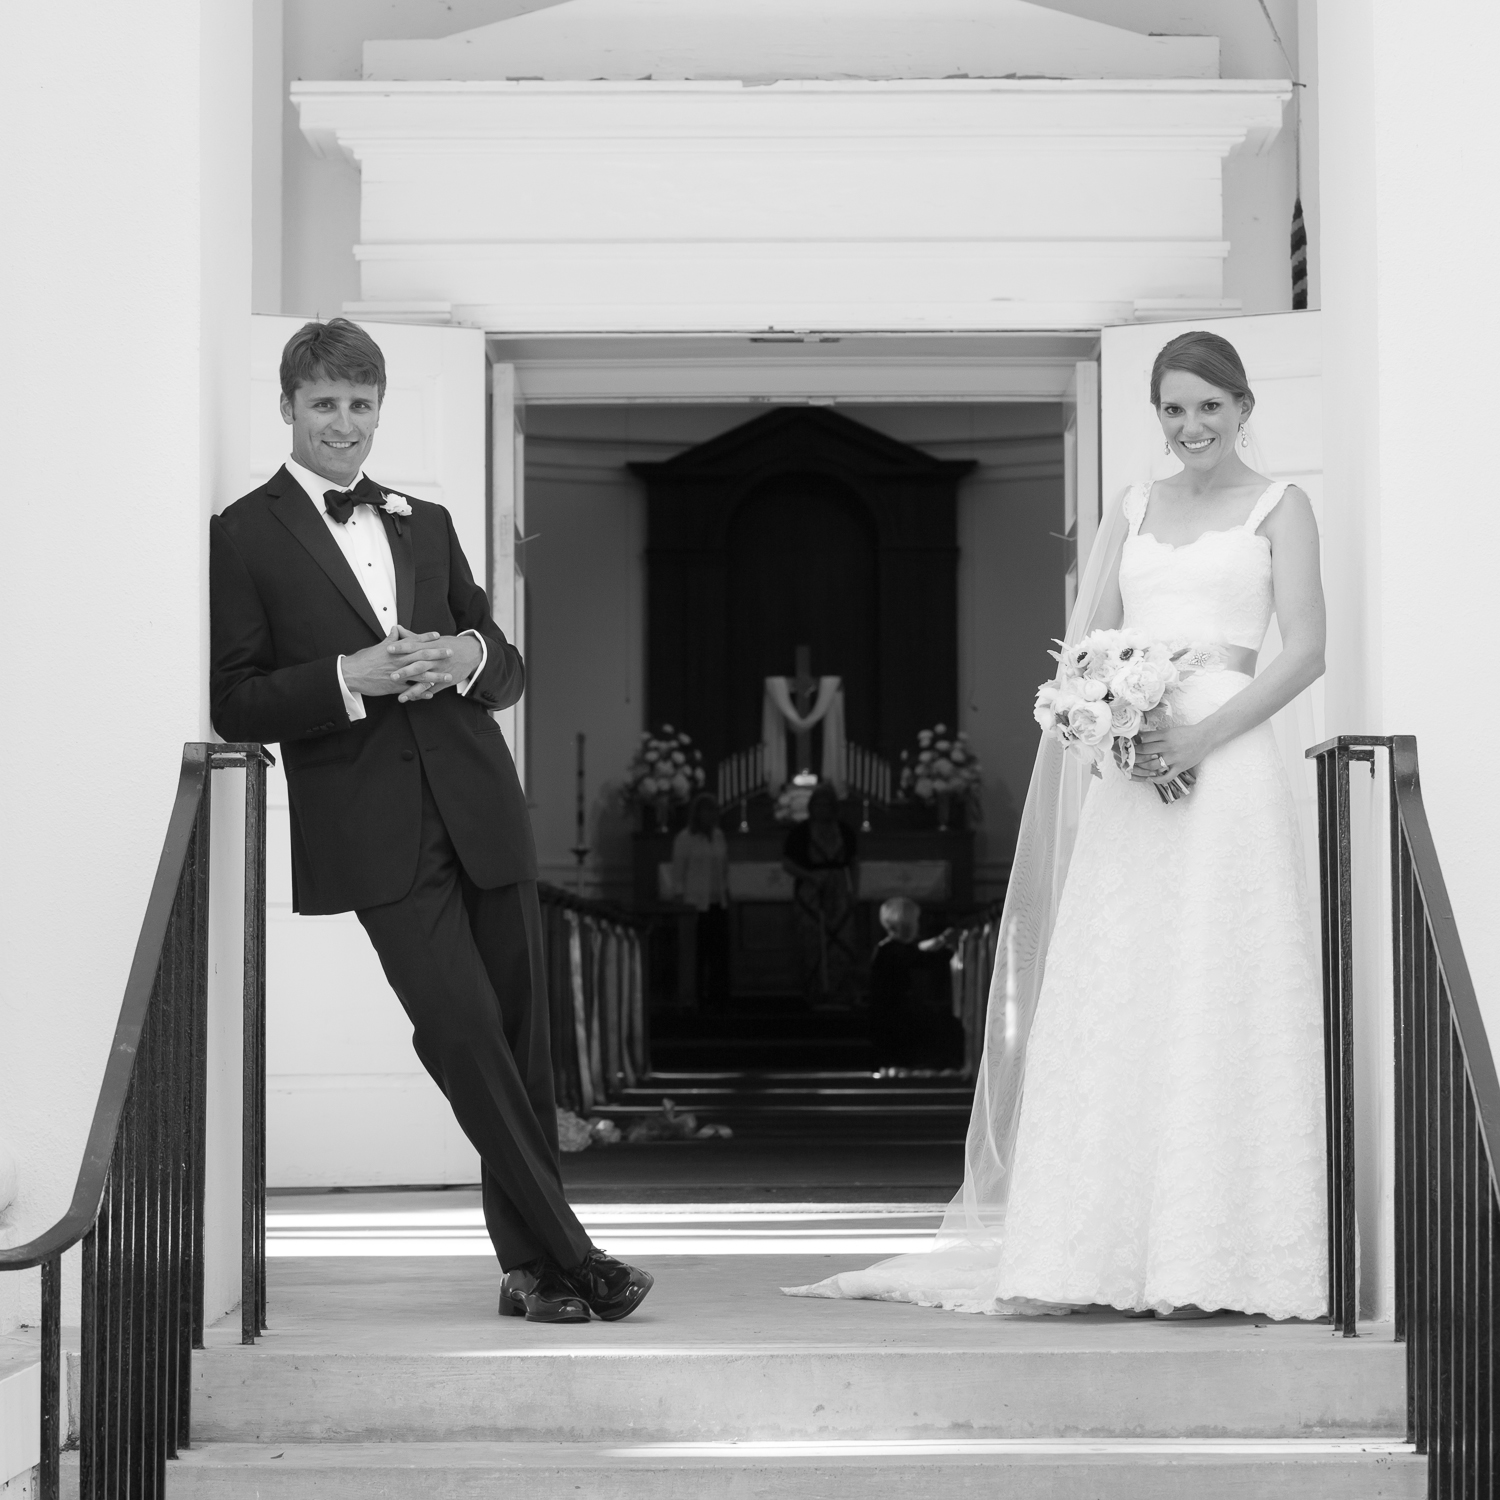 """""""OH MY GOSH! These are the most beautiful pictures I've ever seen. Thank you and James so much for capturing such amazing memories! They really did let us relive the day - and there are so many things that we forgot or didn't get to appreciate on the day. You made it possible!""""     - Laura and Walsh"""